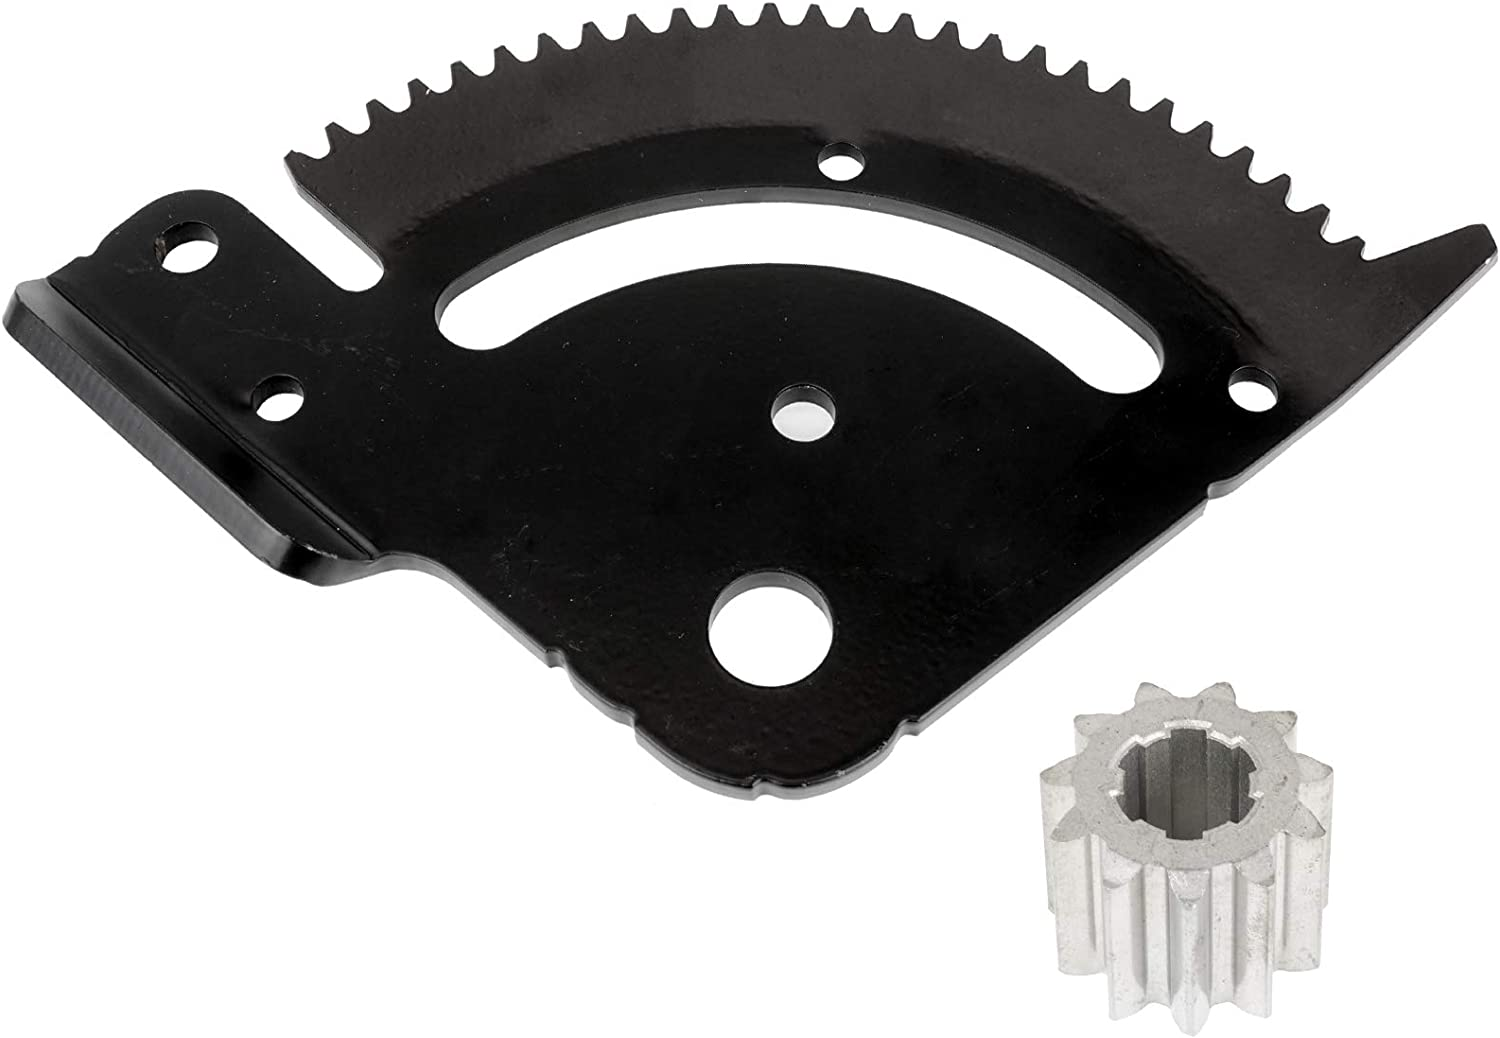 OFFicial site Caltric Steering Sector Plate Phoenix Mall Gear John Deere 10 with Compatible